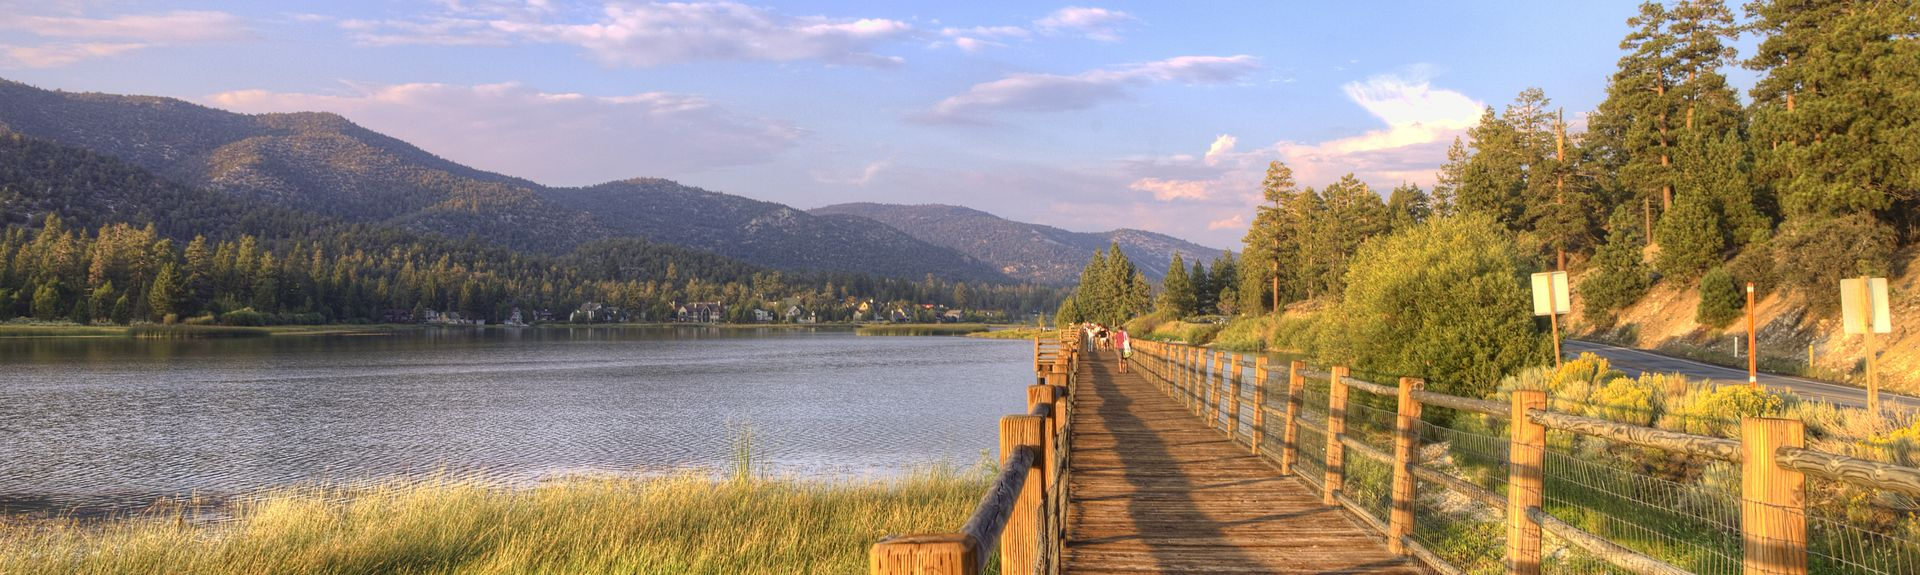 Big Bear Lake, Californië, Verenigde Staten